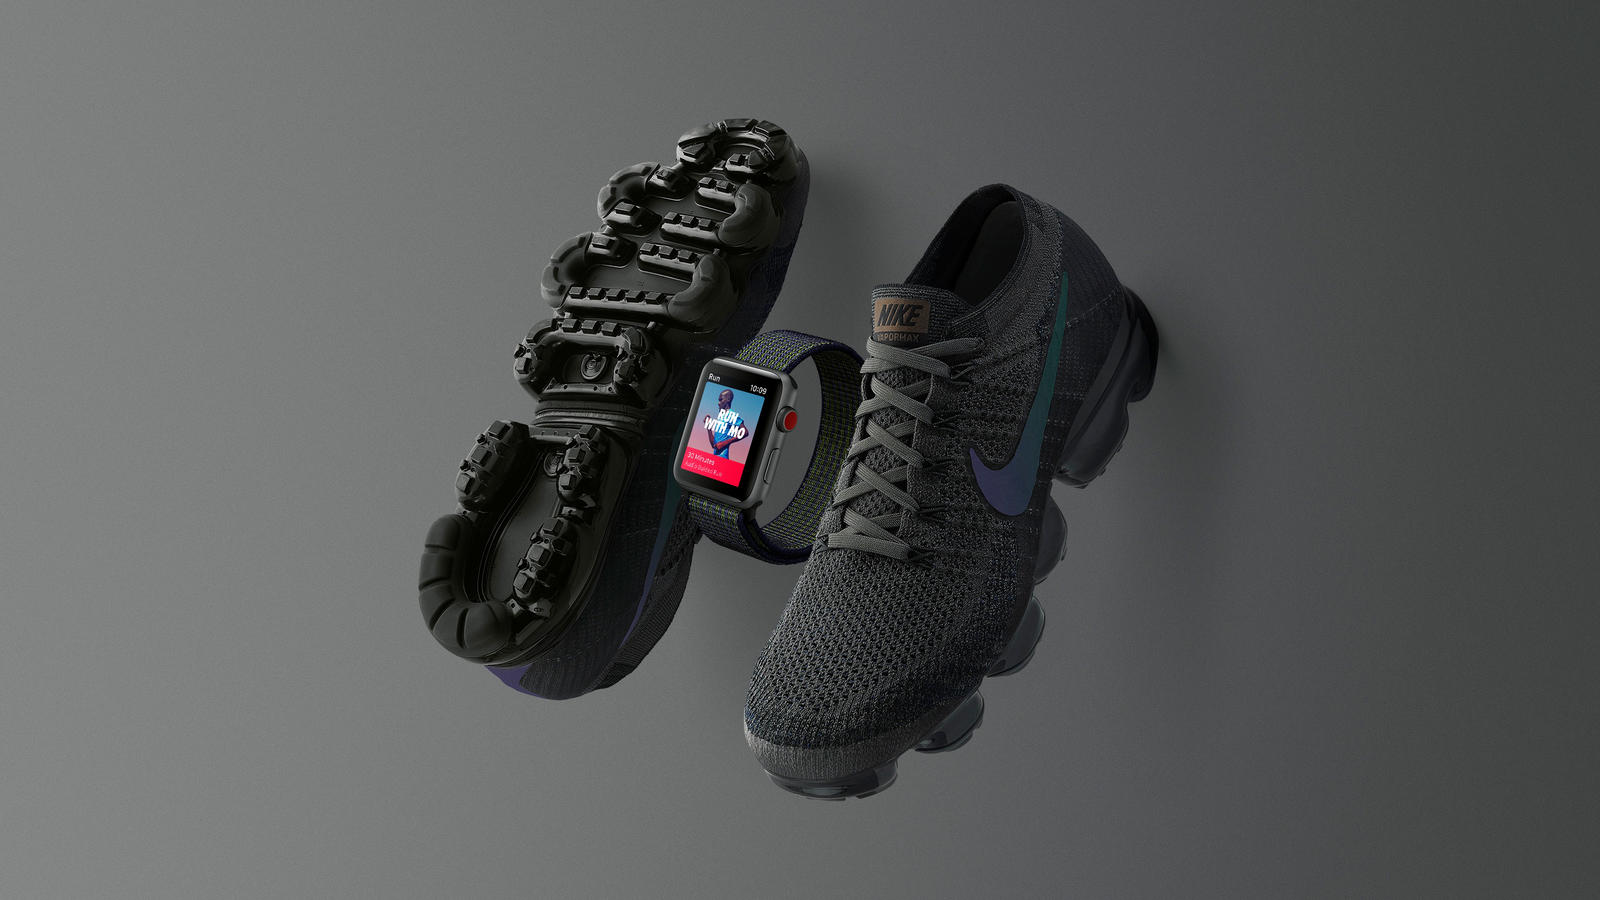 The Midnight Fog edition Nike Apple Watch Cellular + GPS ($399) and Nike  Air Vapormax